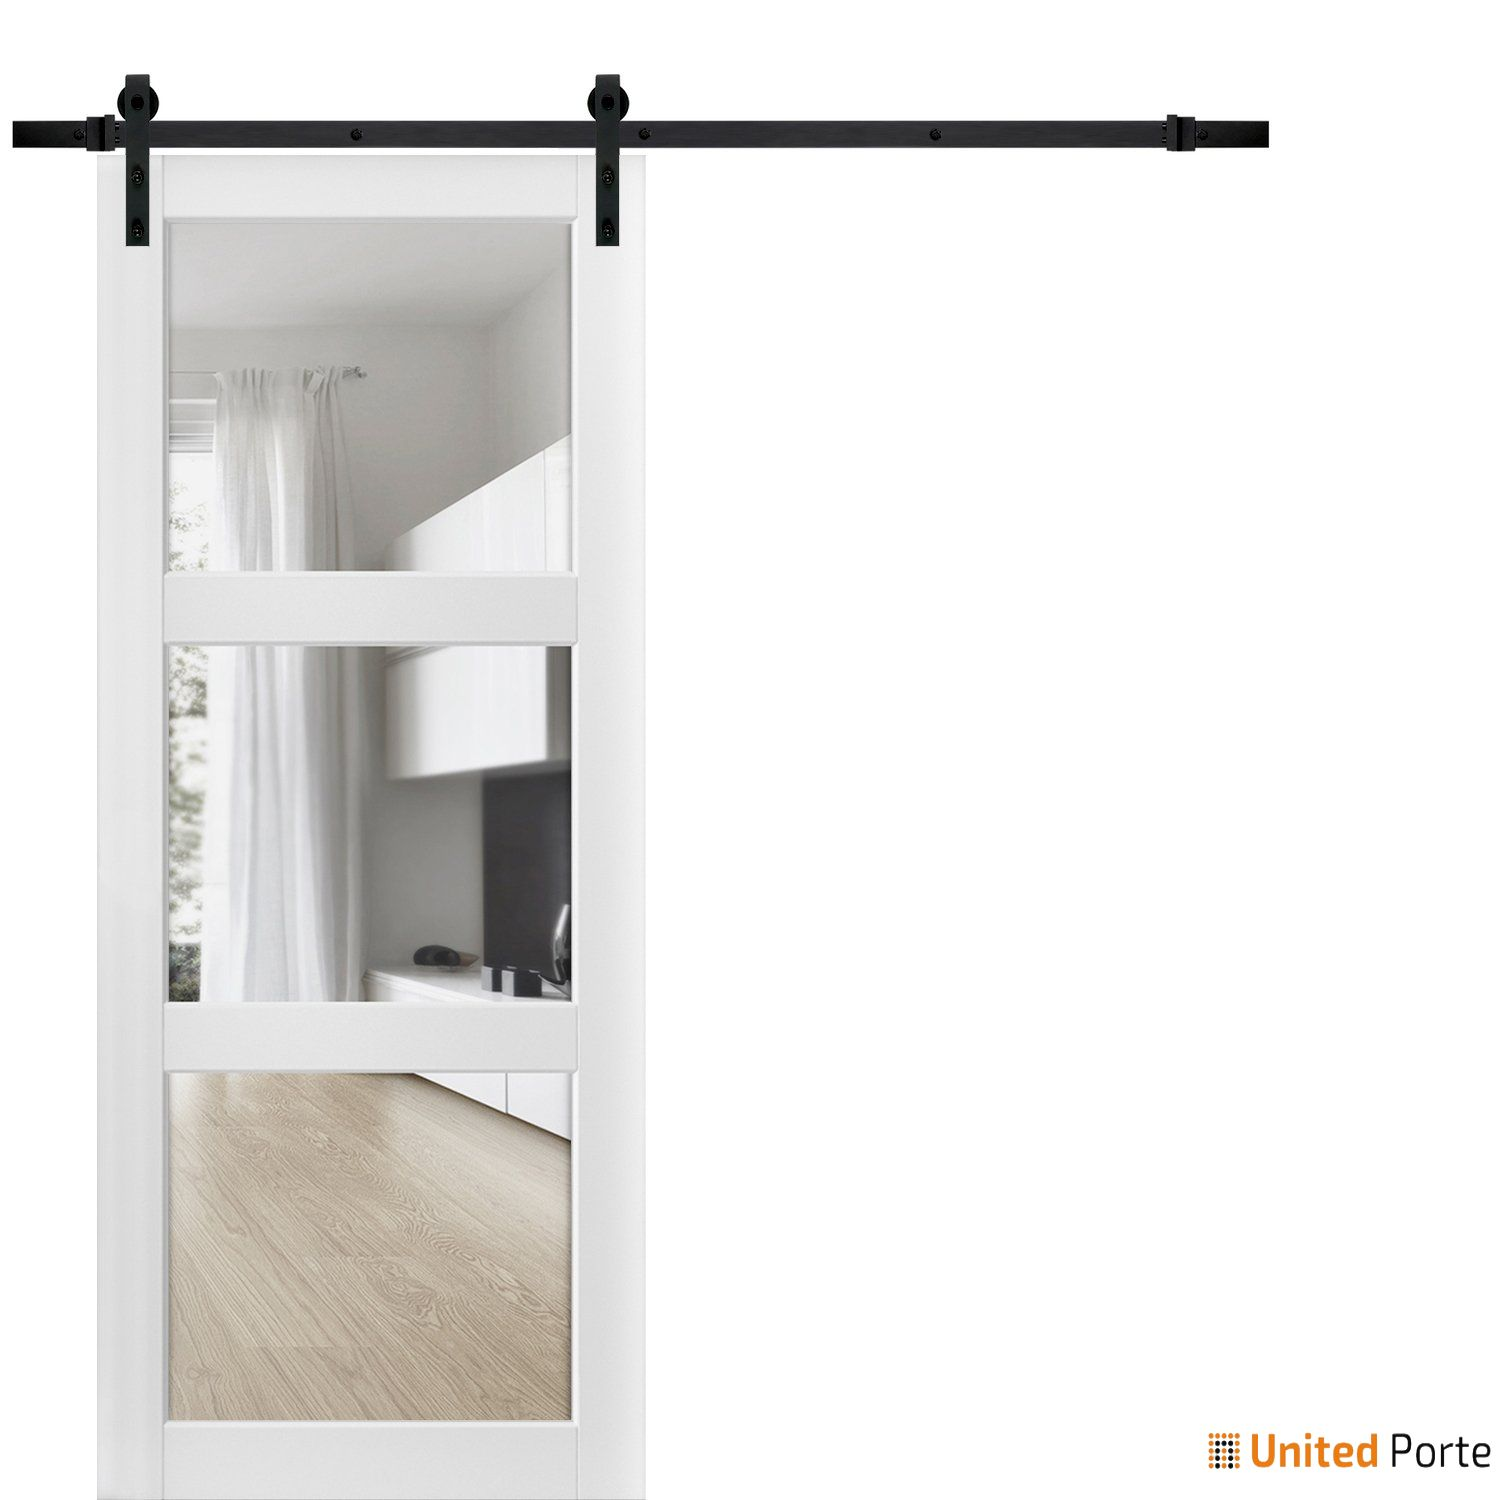 Lucia 2555 Matte White Sturdy Barn Door Clear Glass 3 Lites with Black Hardware   Solid Panel Interior Barn Doors